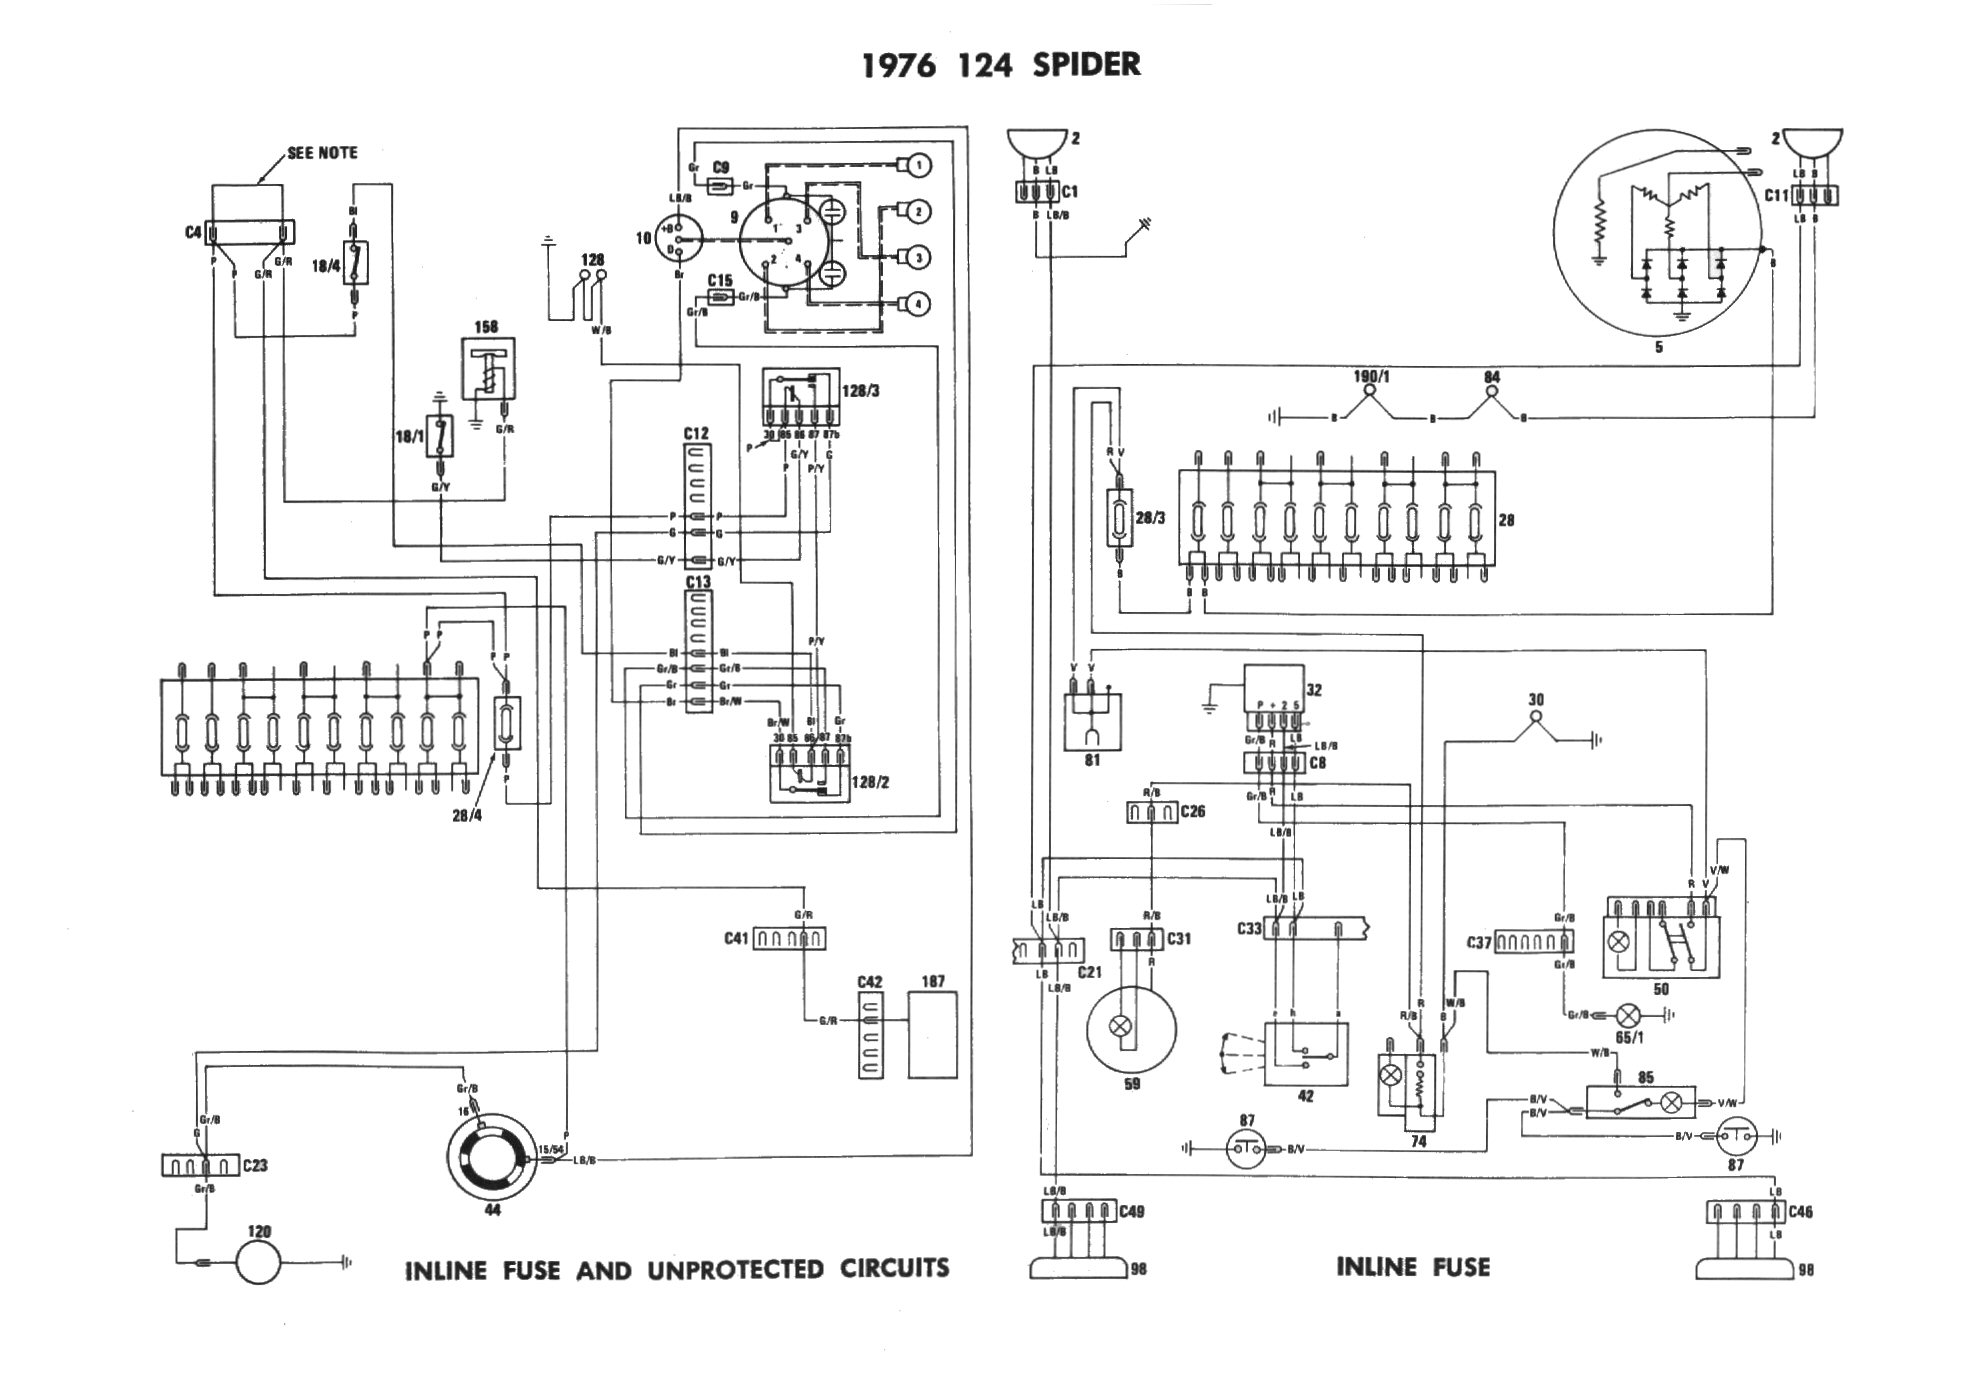 Fiat 131 Fuse Box - Data Wiring Diagram Schematic Fuse Box Fiat on fiat 500 intercooler, fiat 500 air filter box, fiat 500 window regulator, fiat 500 oil pan, fiat 500 tail lamp, polaris 500 fuse box, fiat 500 strut, fiat 500 grille, fiat 500 camshaft, fiat 500 power steering reservoir, fiat 500 cowl, fiat 500 cigarette lighter fuse, fiat 500 interior, fiat 500 parking lights, fiat 500 starter, fiat 500 bumper cover, fiat 500 roll bar, fiat spider fuse box, fiat 500 rear hatch, fiat 500 tail light bulb,